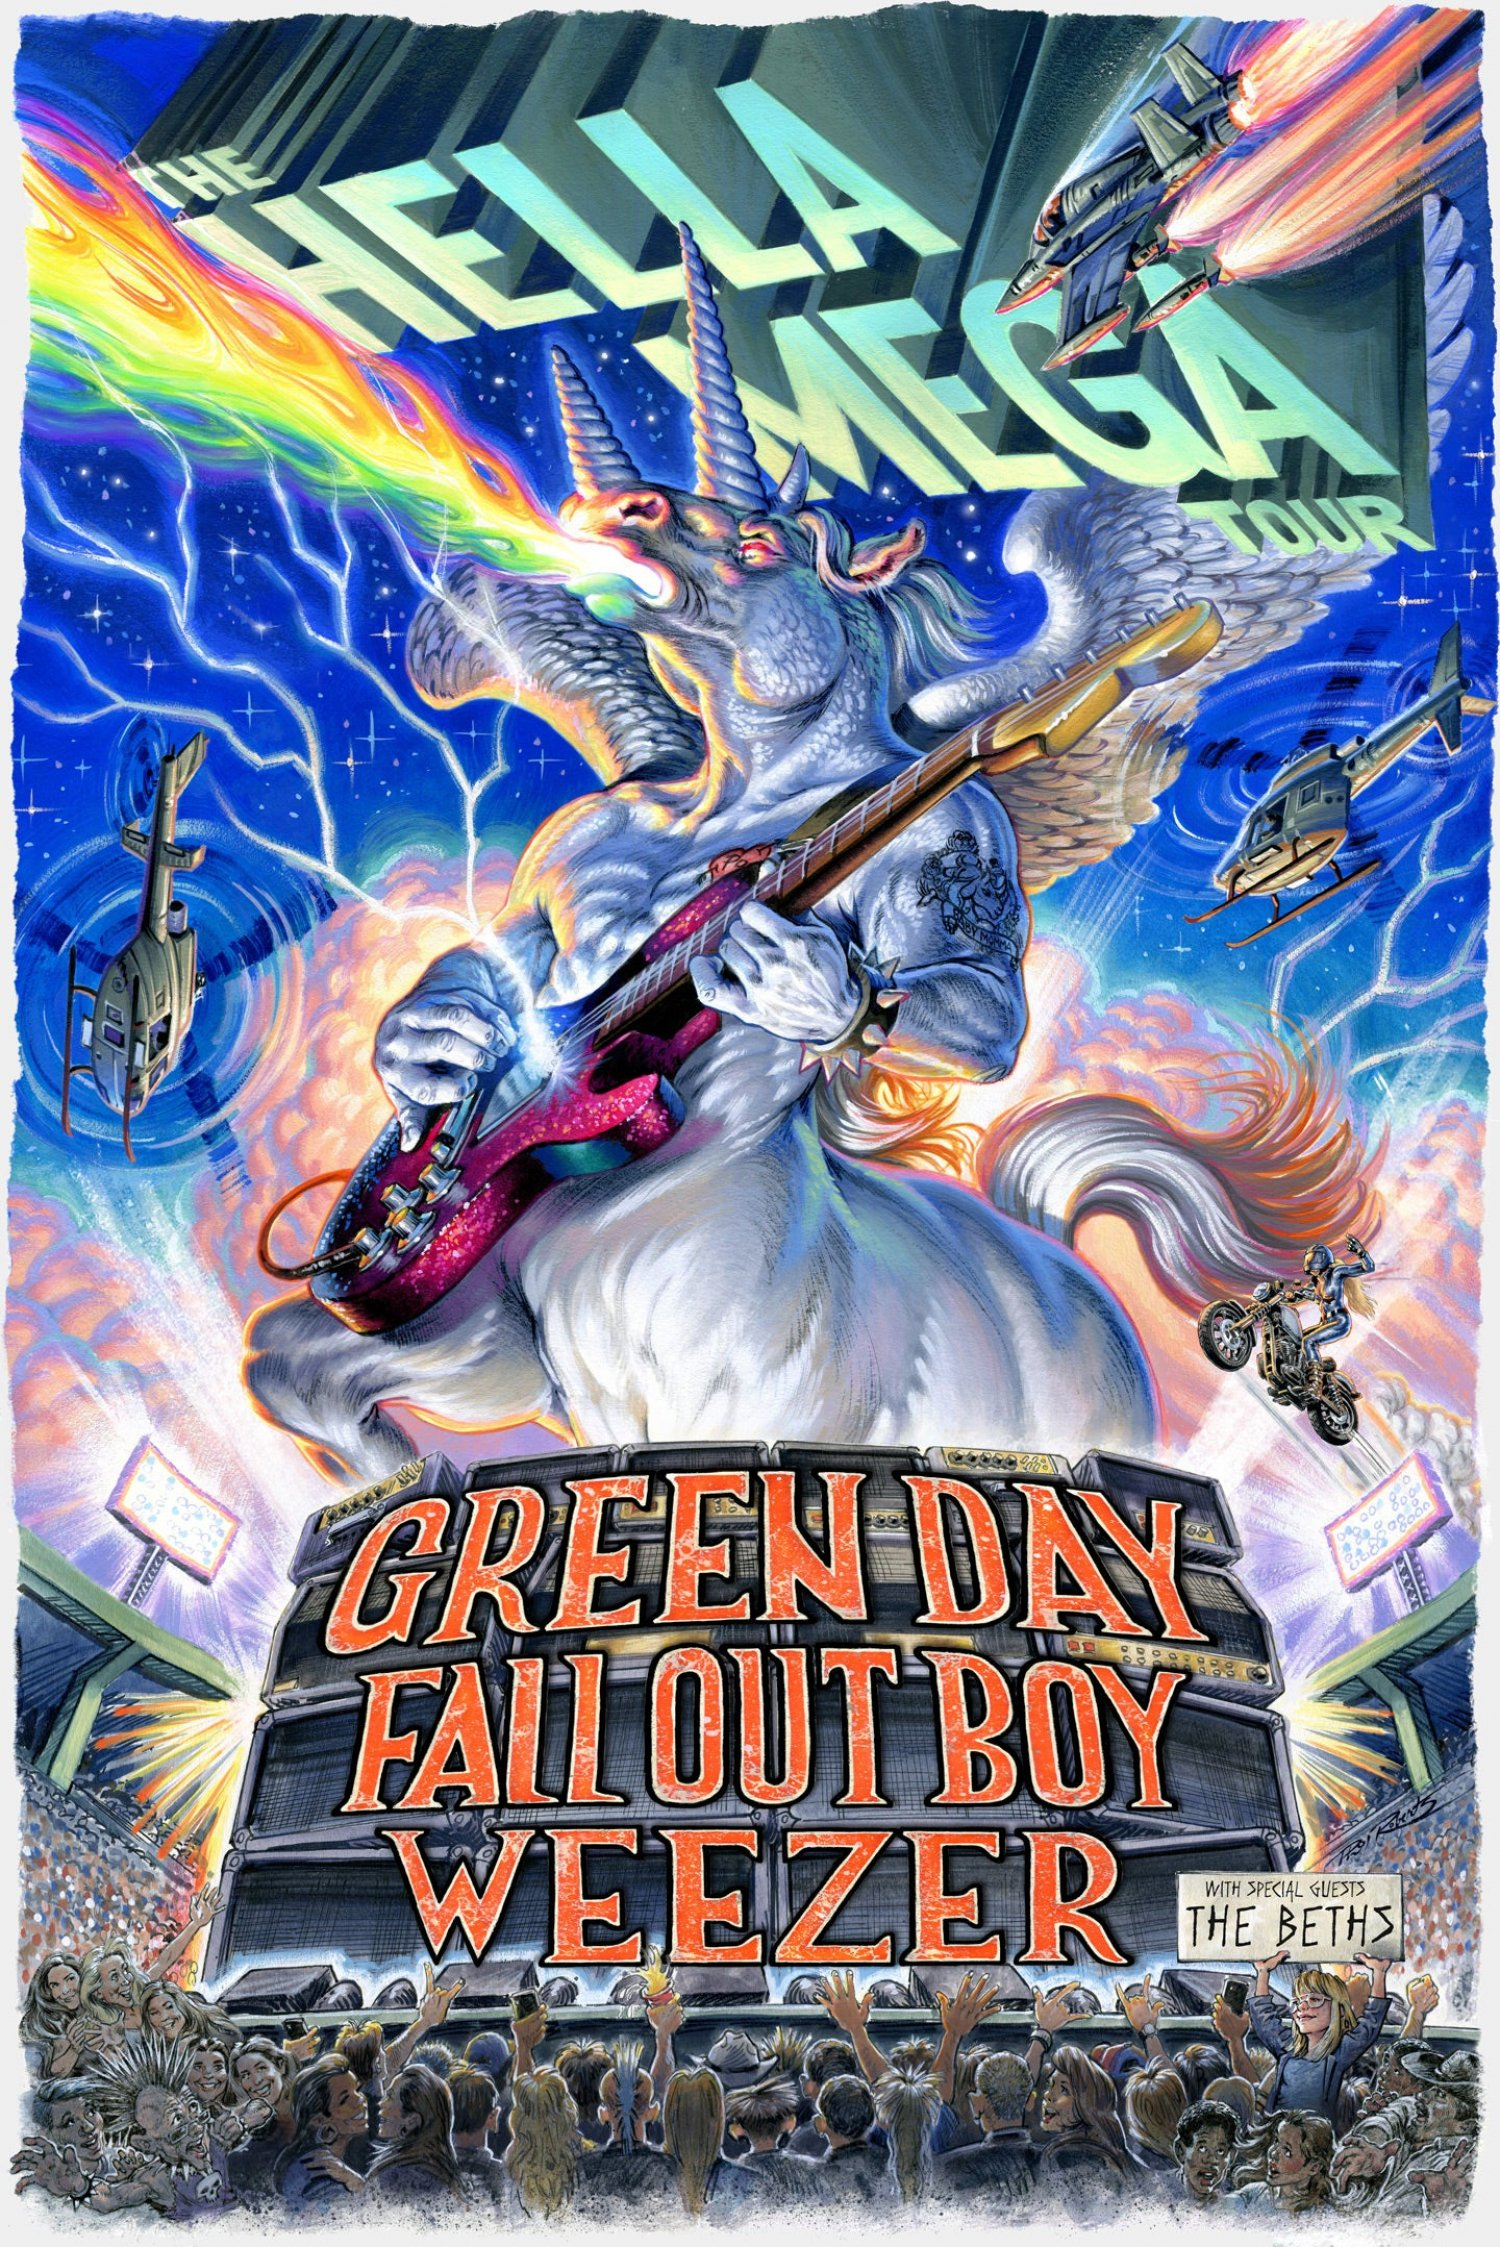 Hella Mega Tour - Green Day, Fall Out Boy & Weezer